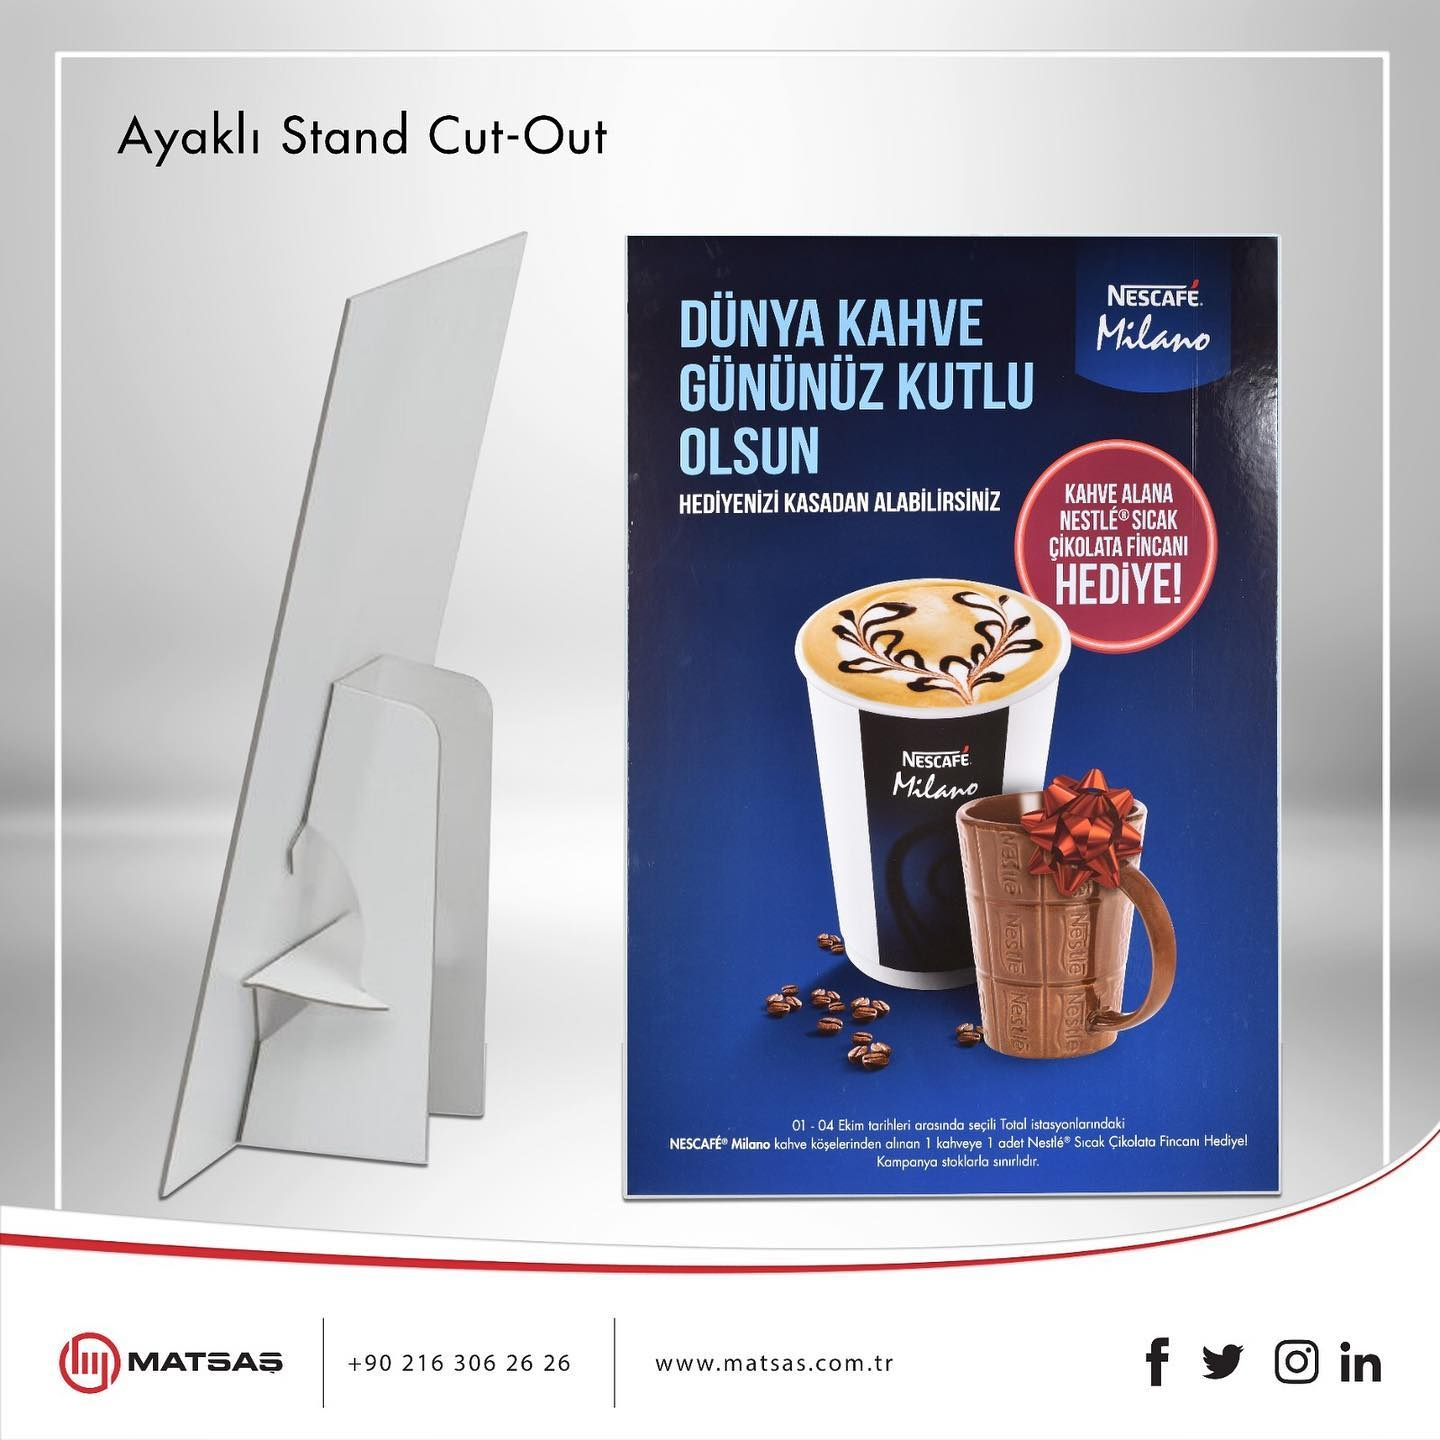 Ayaklı Stand Cut-Out